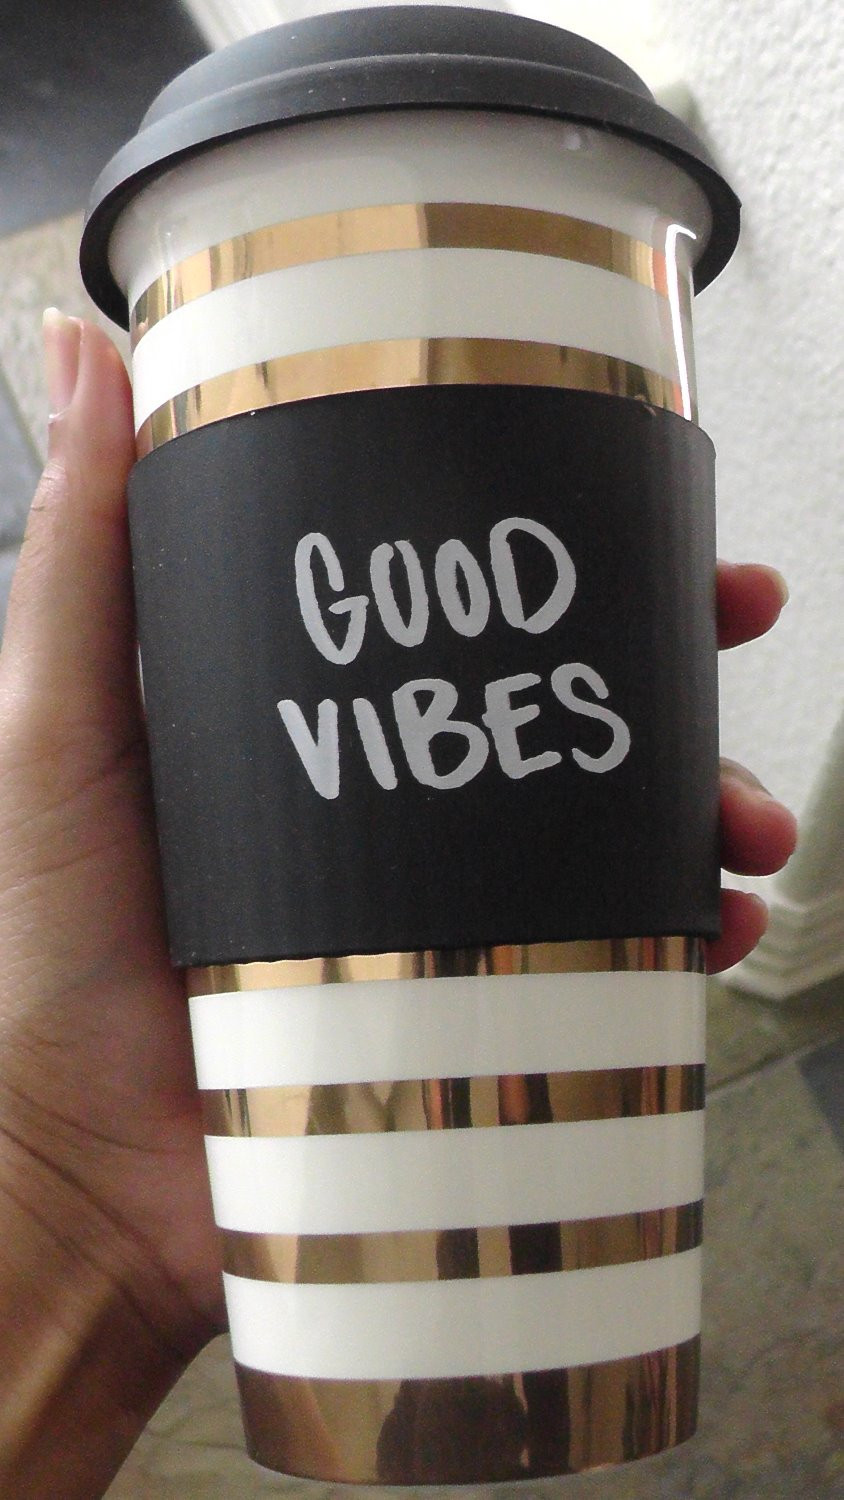 Good Vibes Travel Mug, $7.99